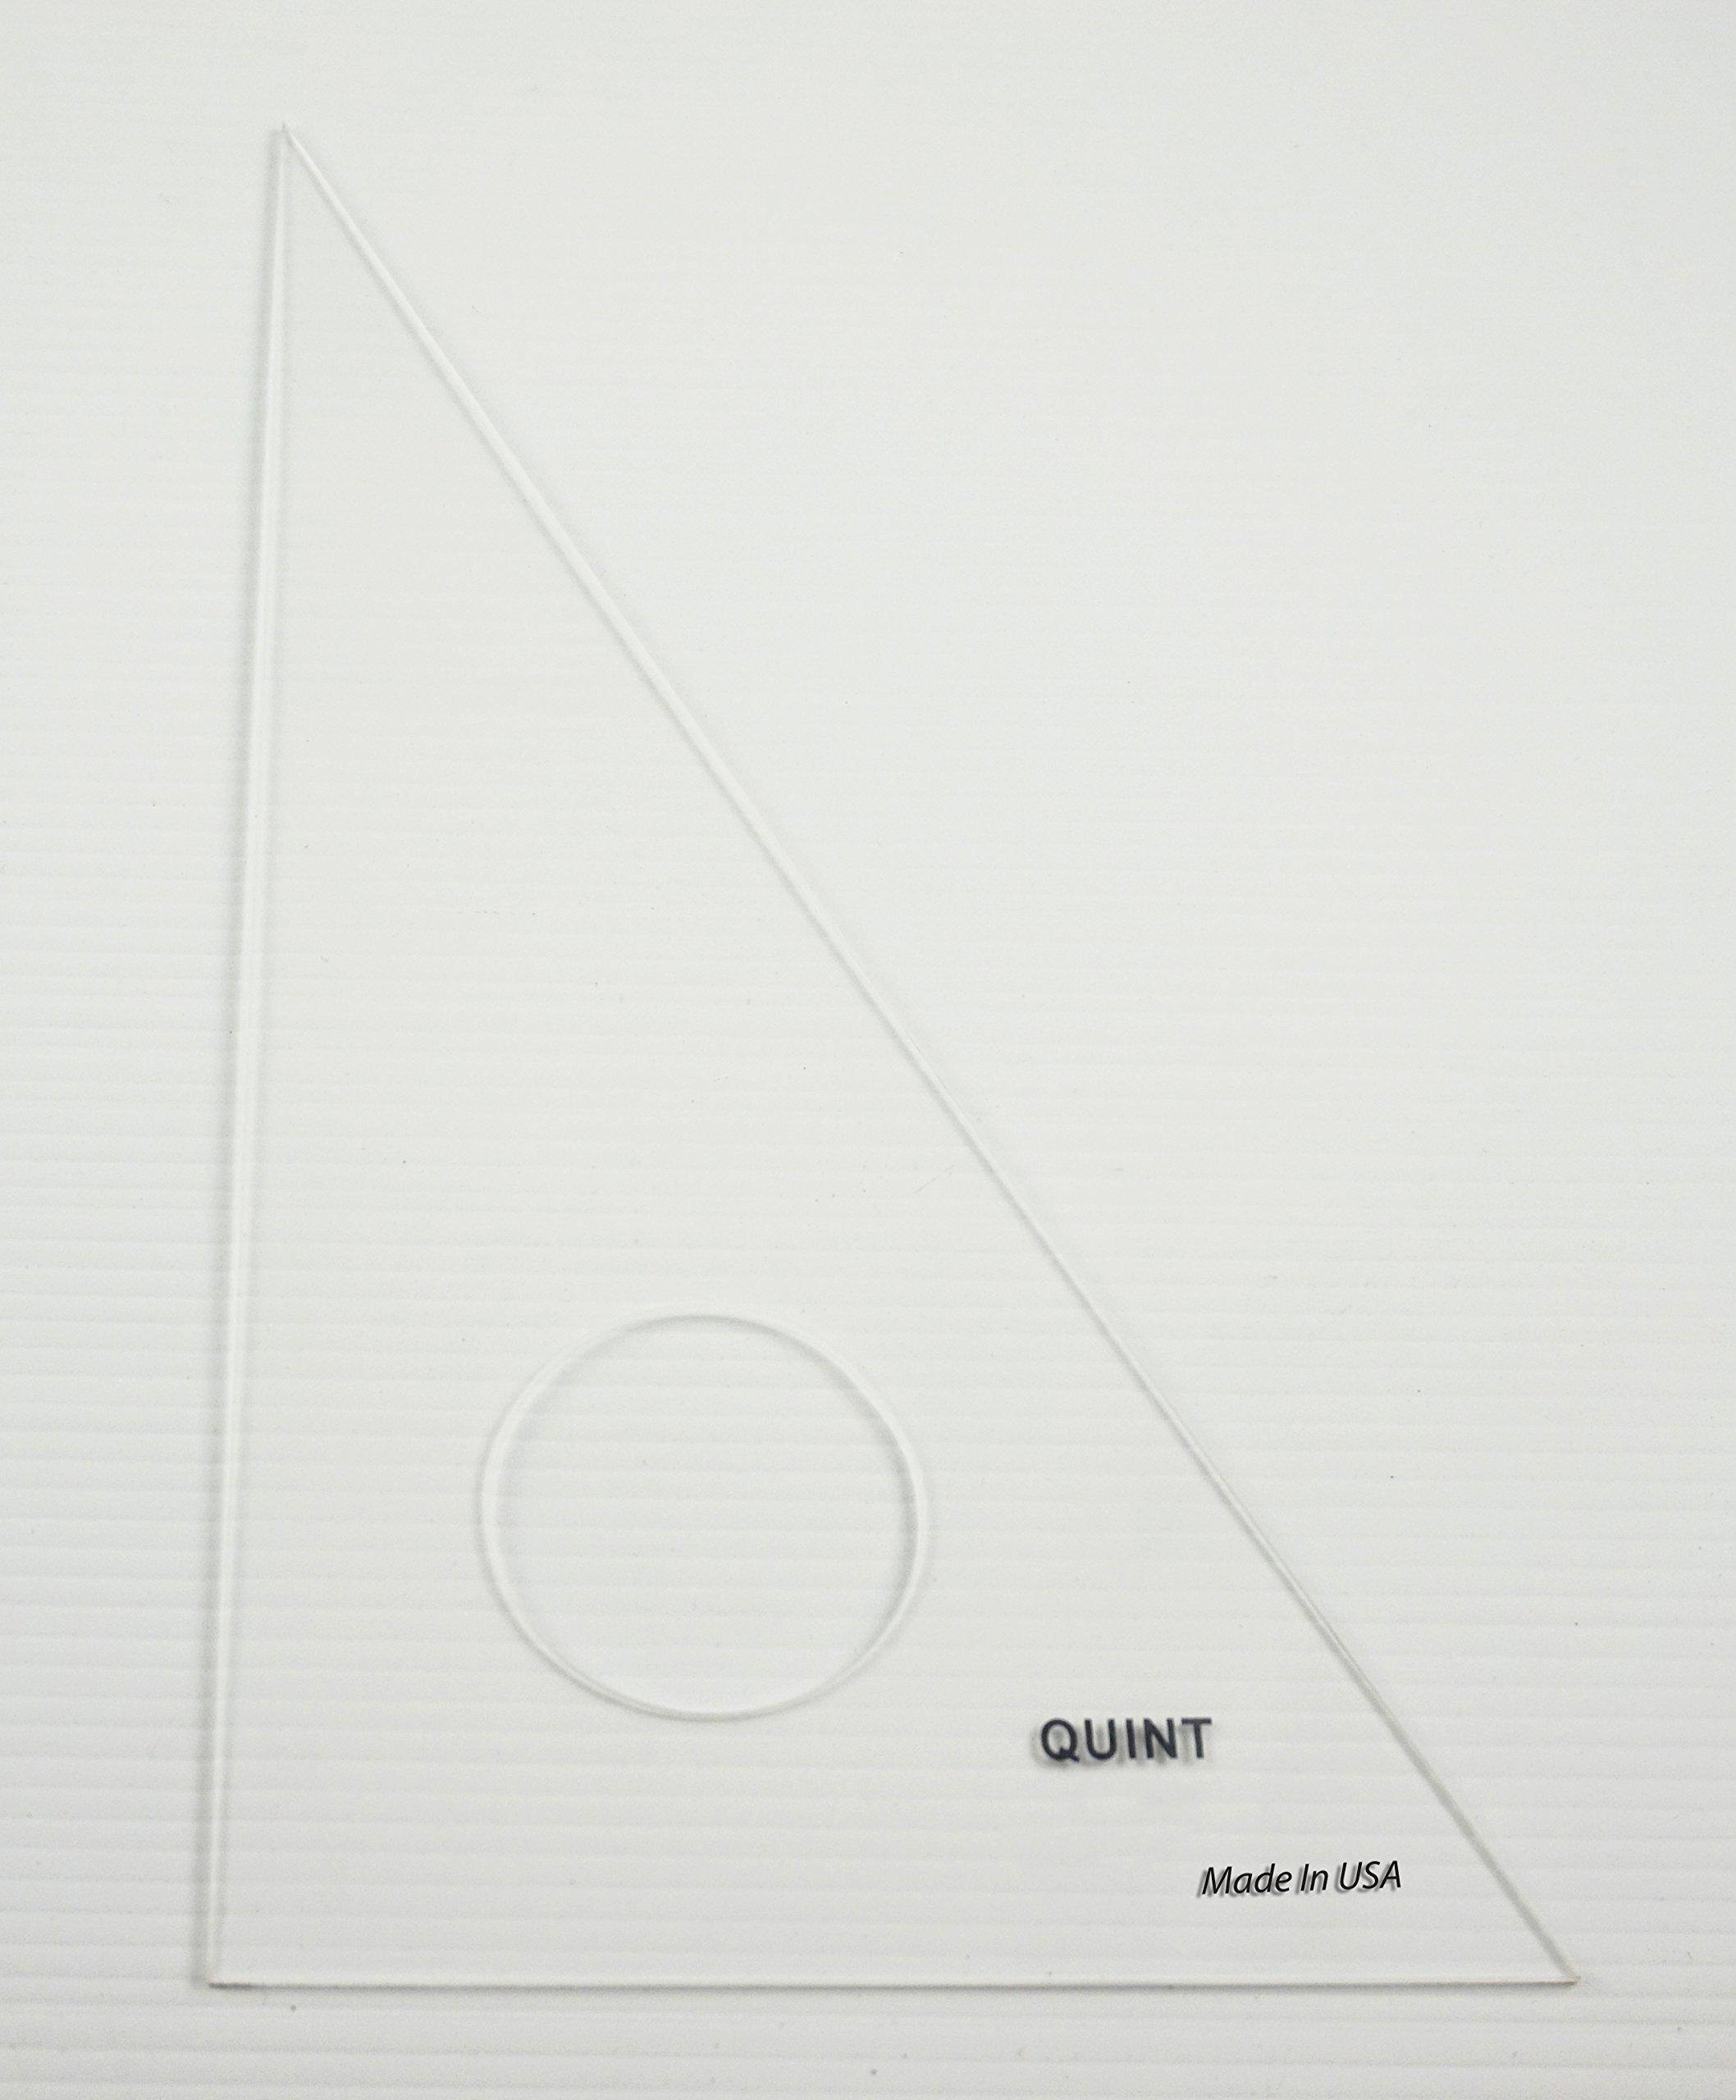 QUINT Premium Unbreakable Clear Academic Triangle 30/60 - 12'' 30 Piece Classroom Pack by Quint Measuring Systems